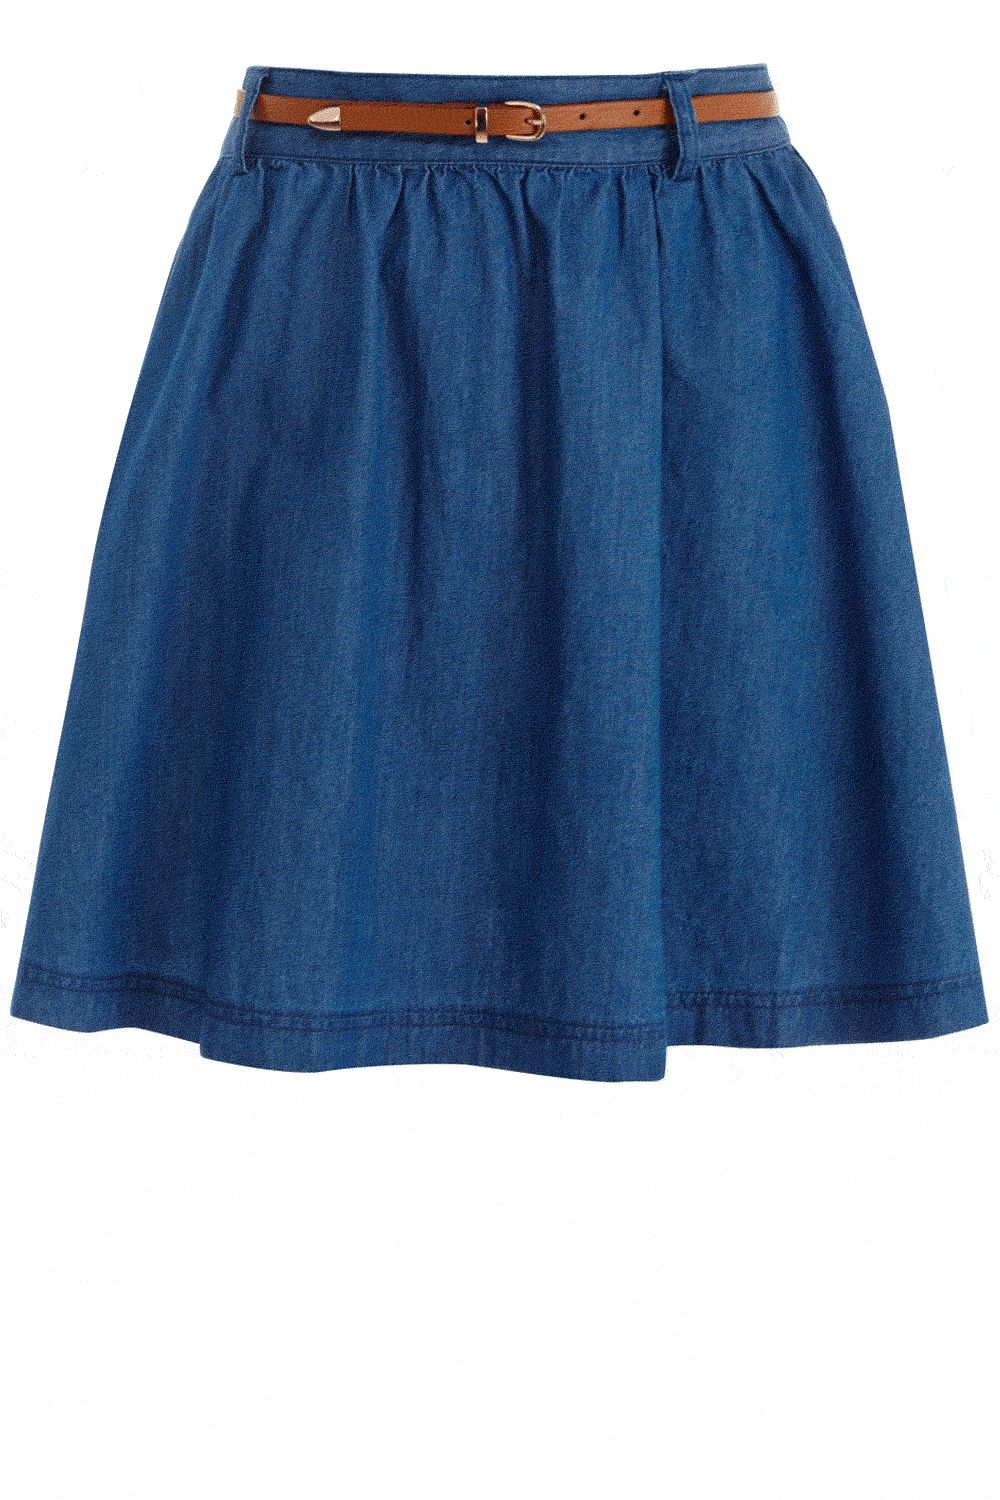 Lillie skater skirt